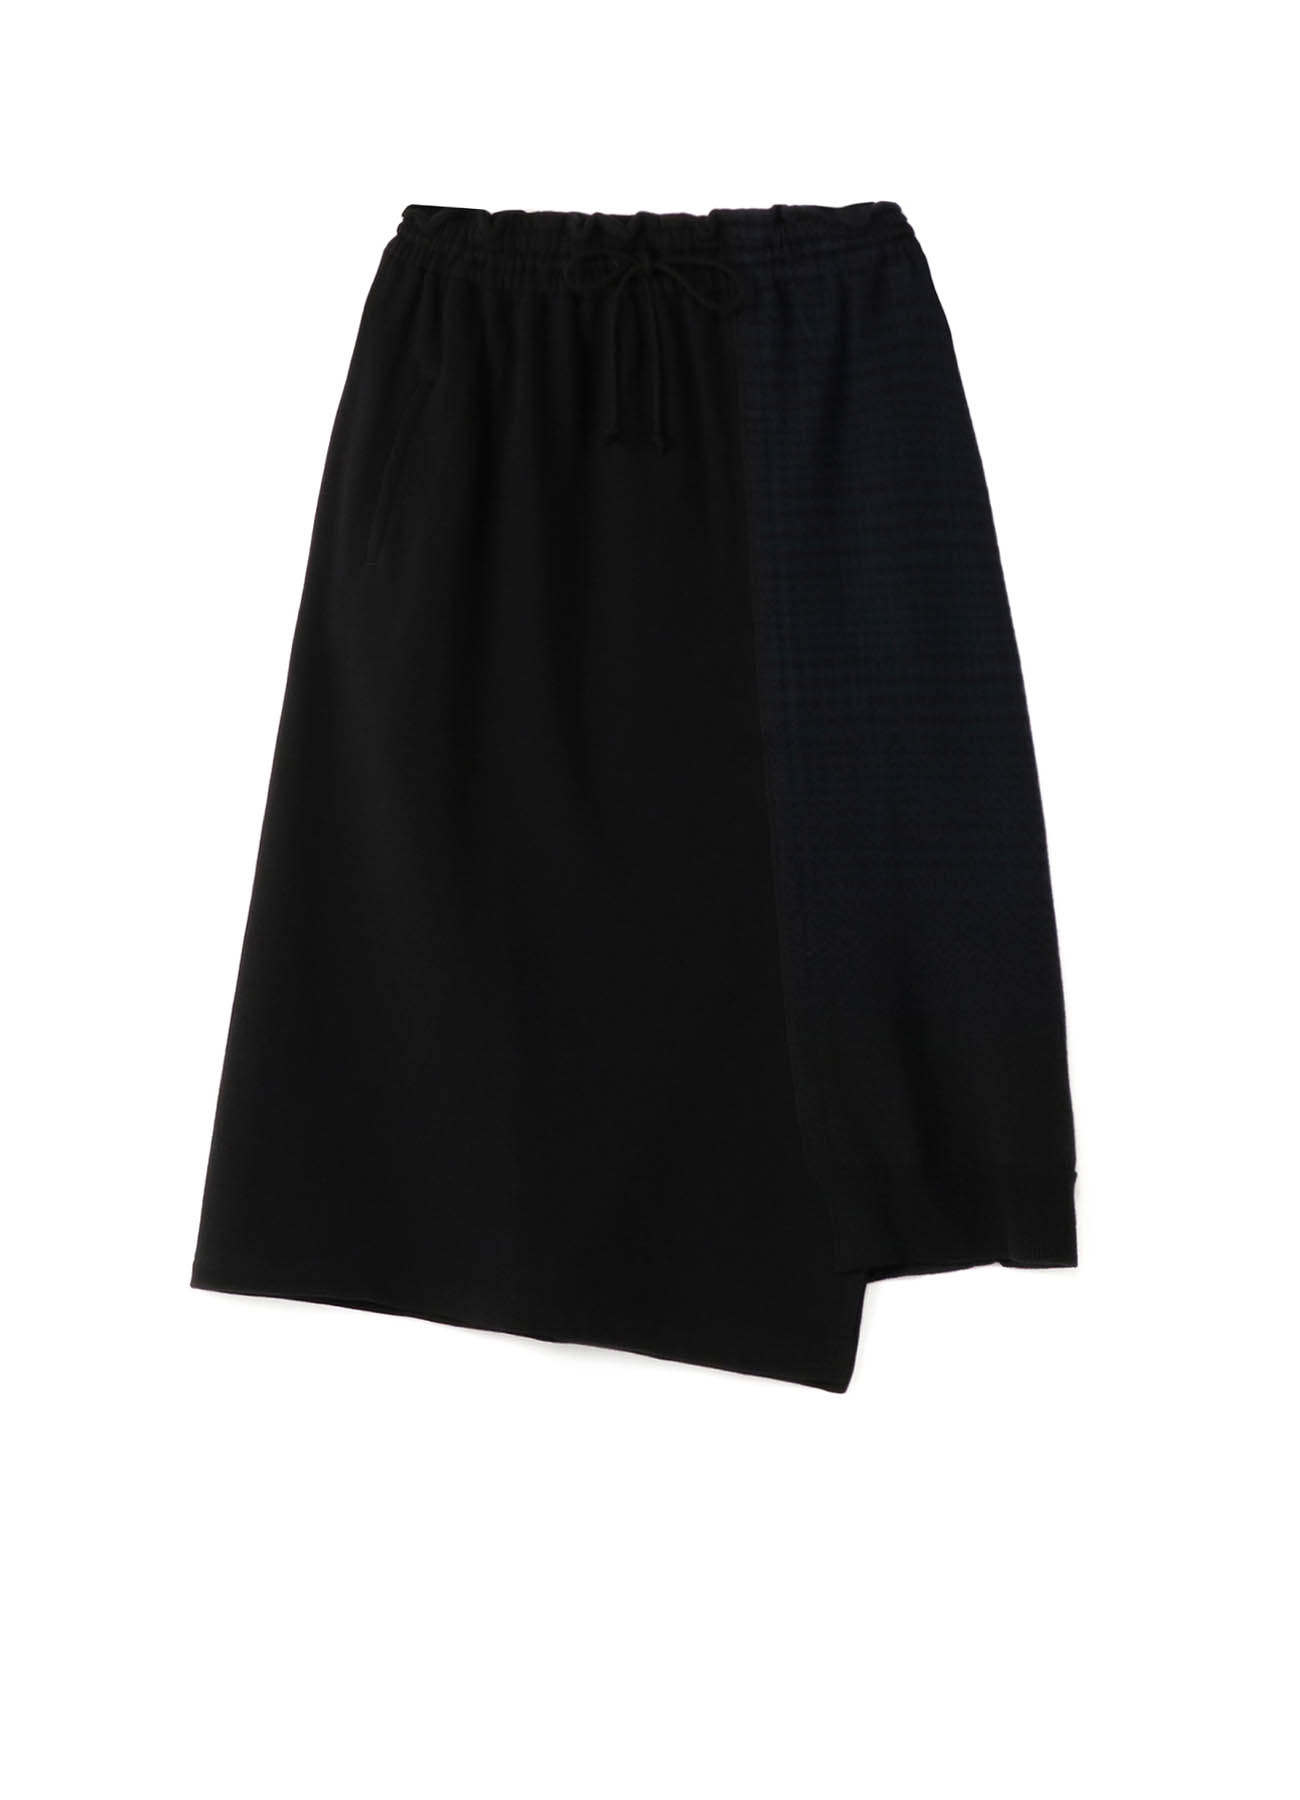 COTTON x FLEECY + GLEN CHECK JACQUARD UNBALANCE GATHER SKIRT